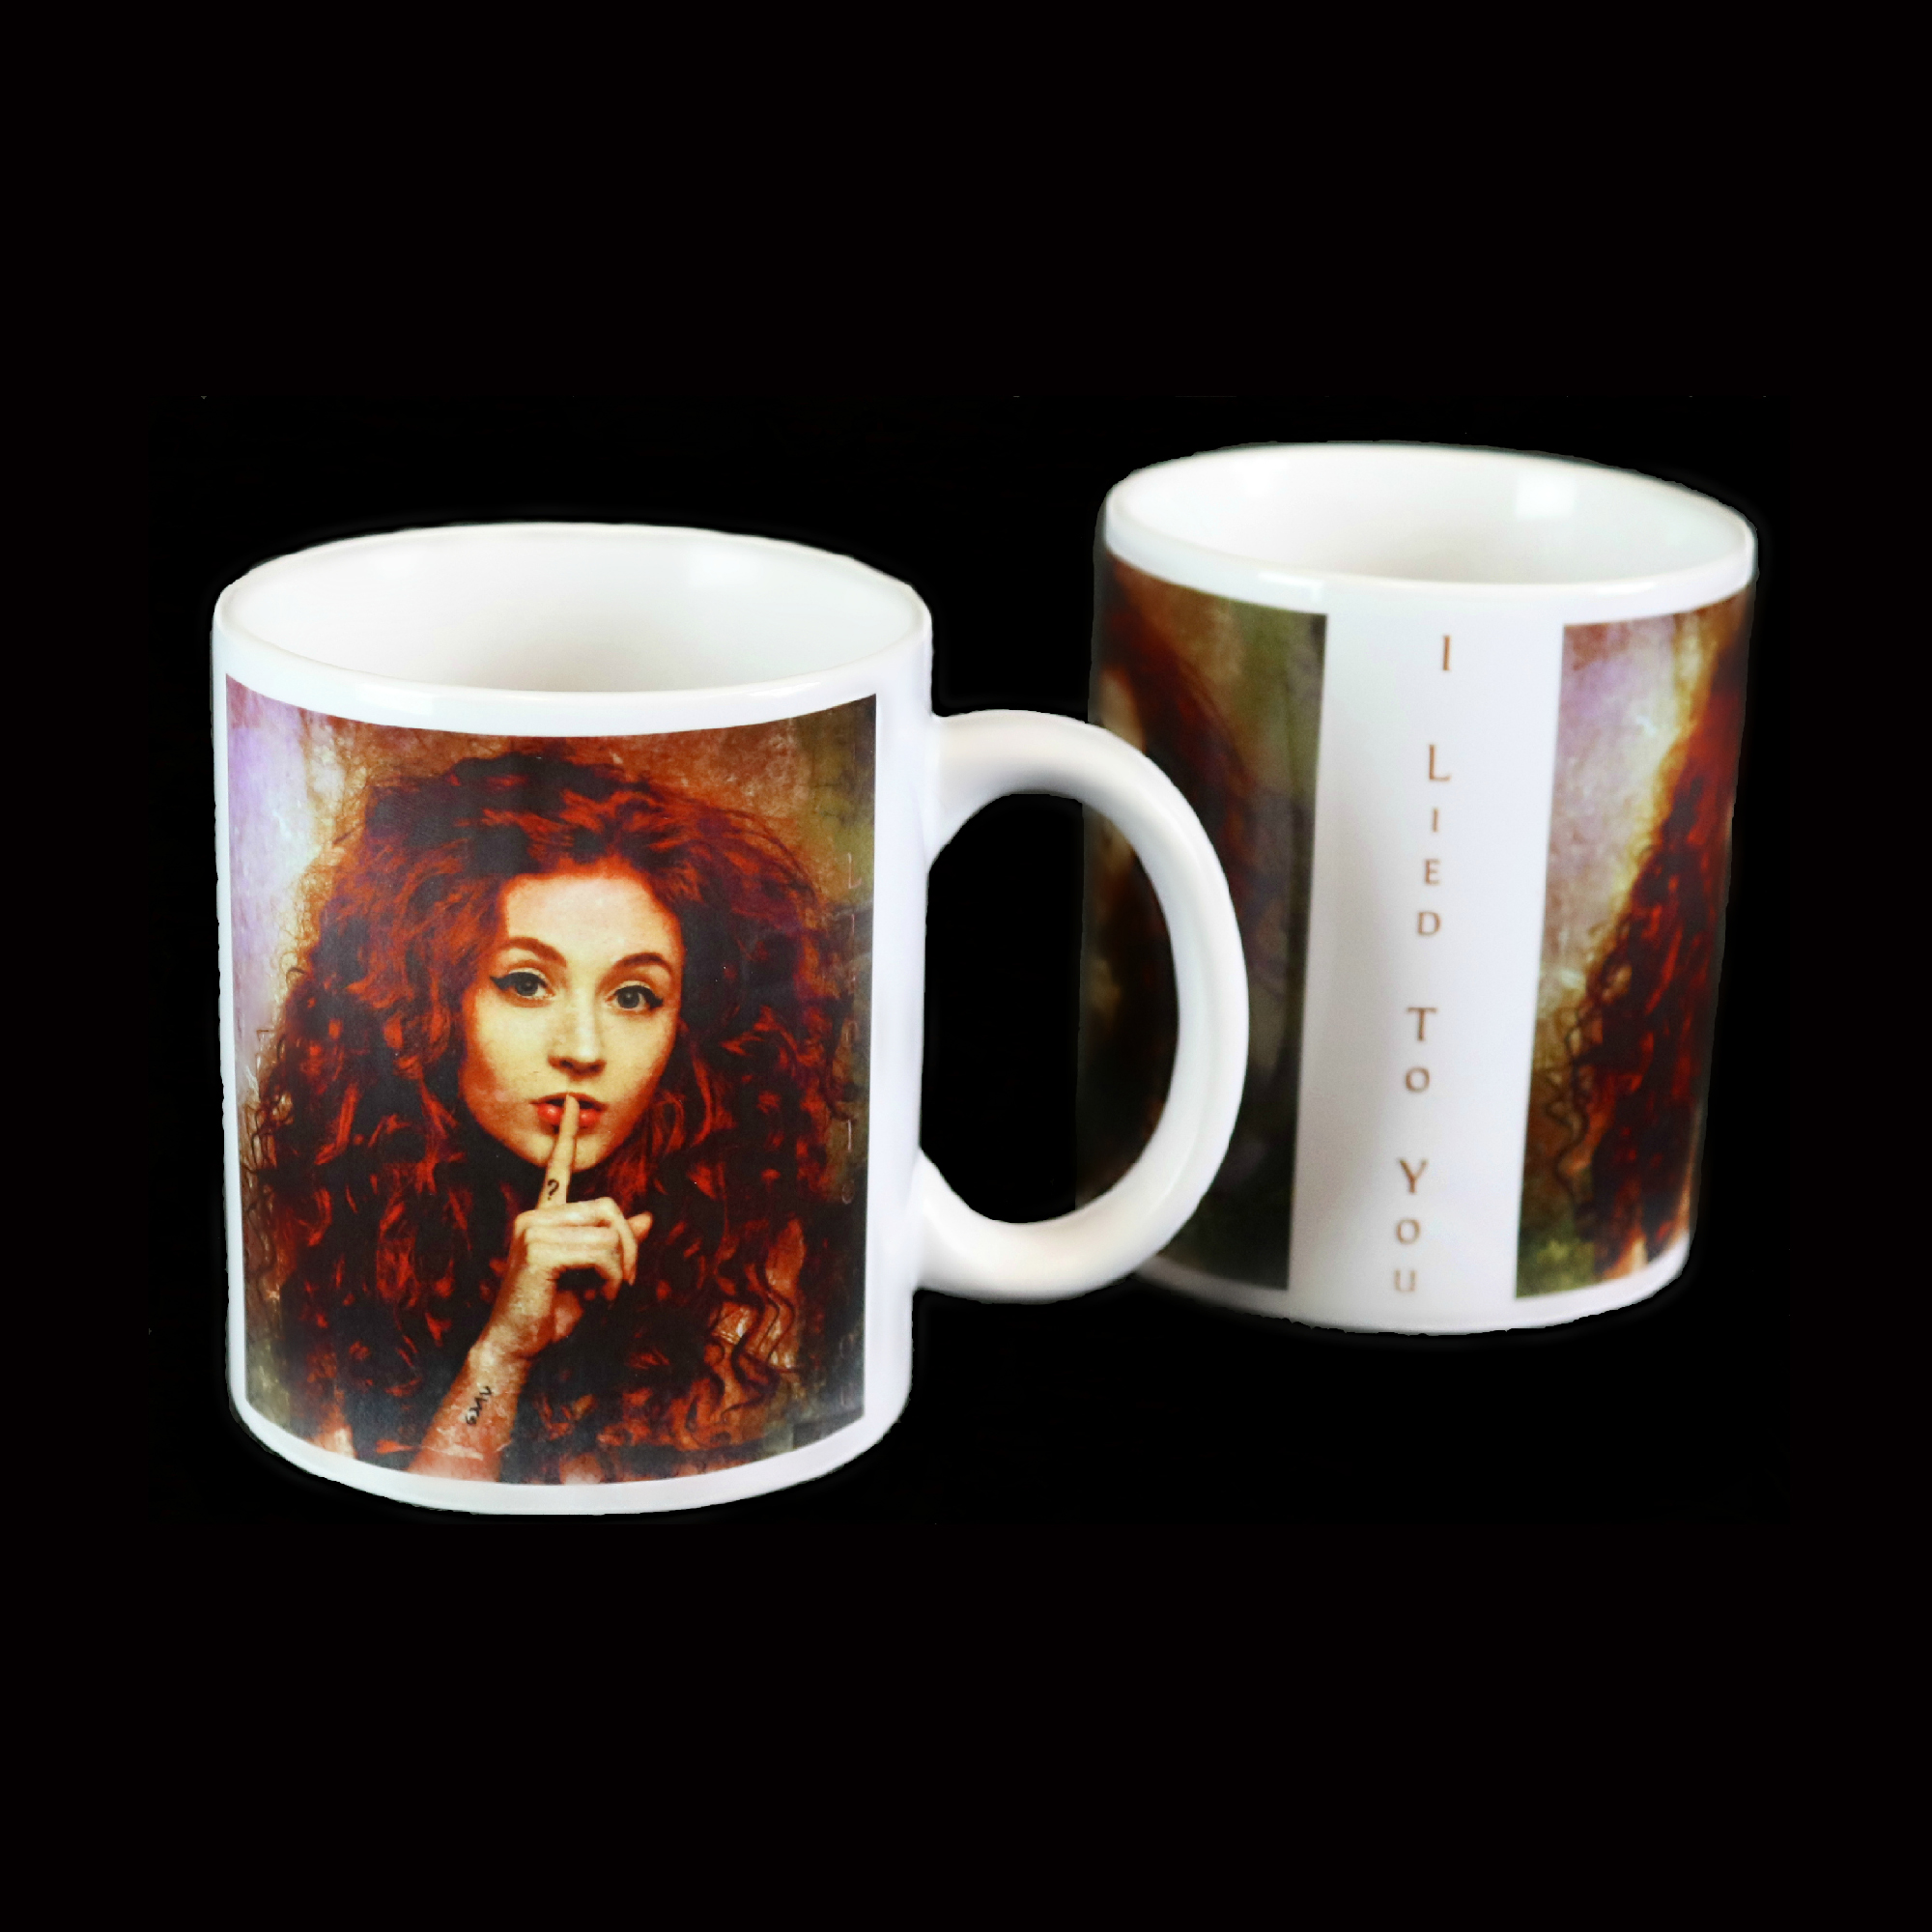 I Lied To You - Single Cover Mug - Janet Devlin